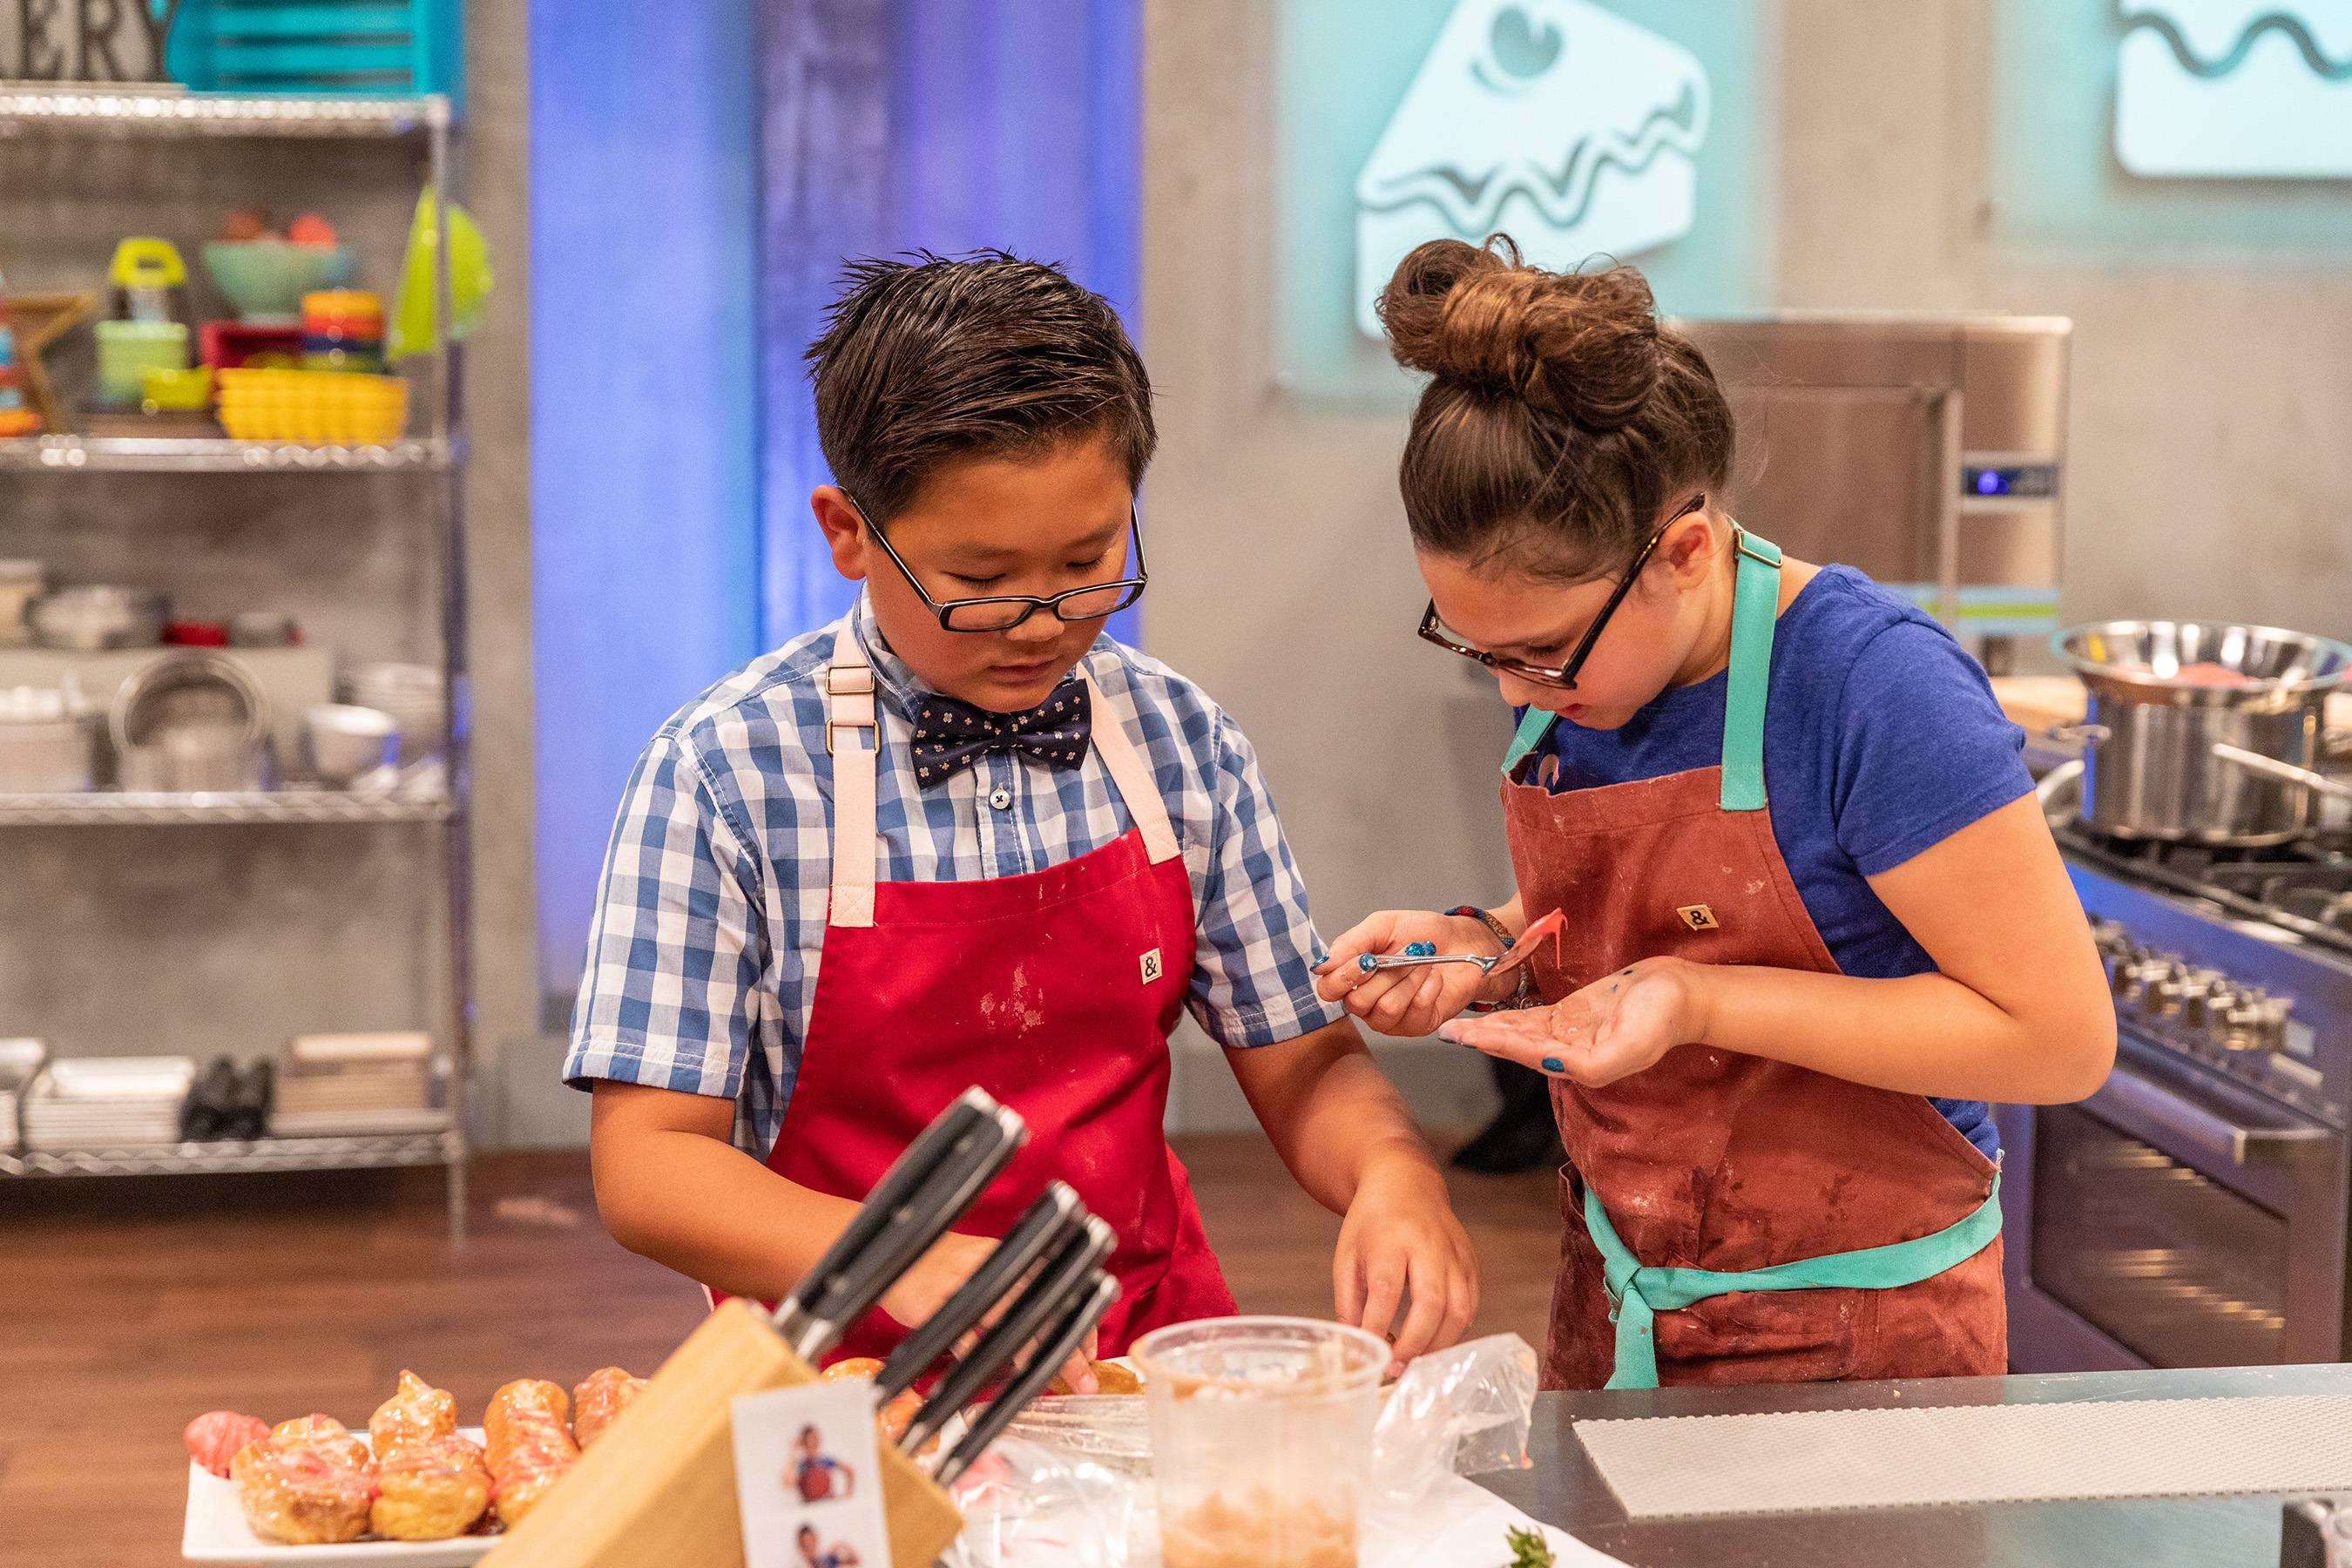 Matthew Azuma assists contestant Issi Neufeld on Food Network's Kids Baking Championship